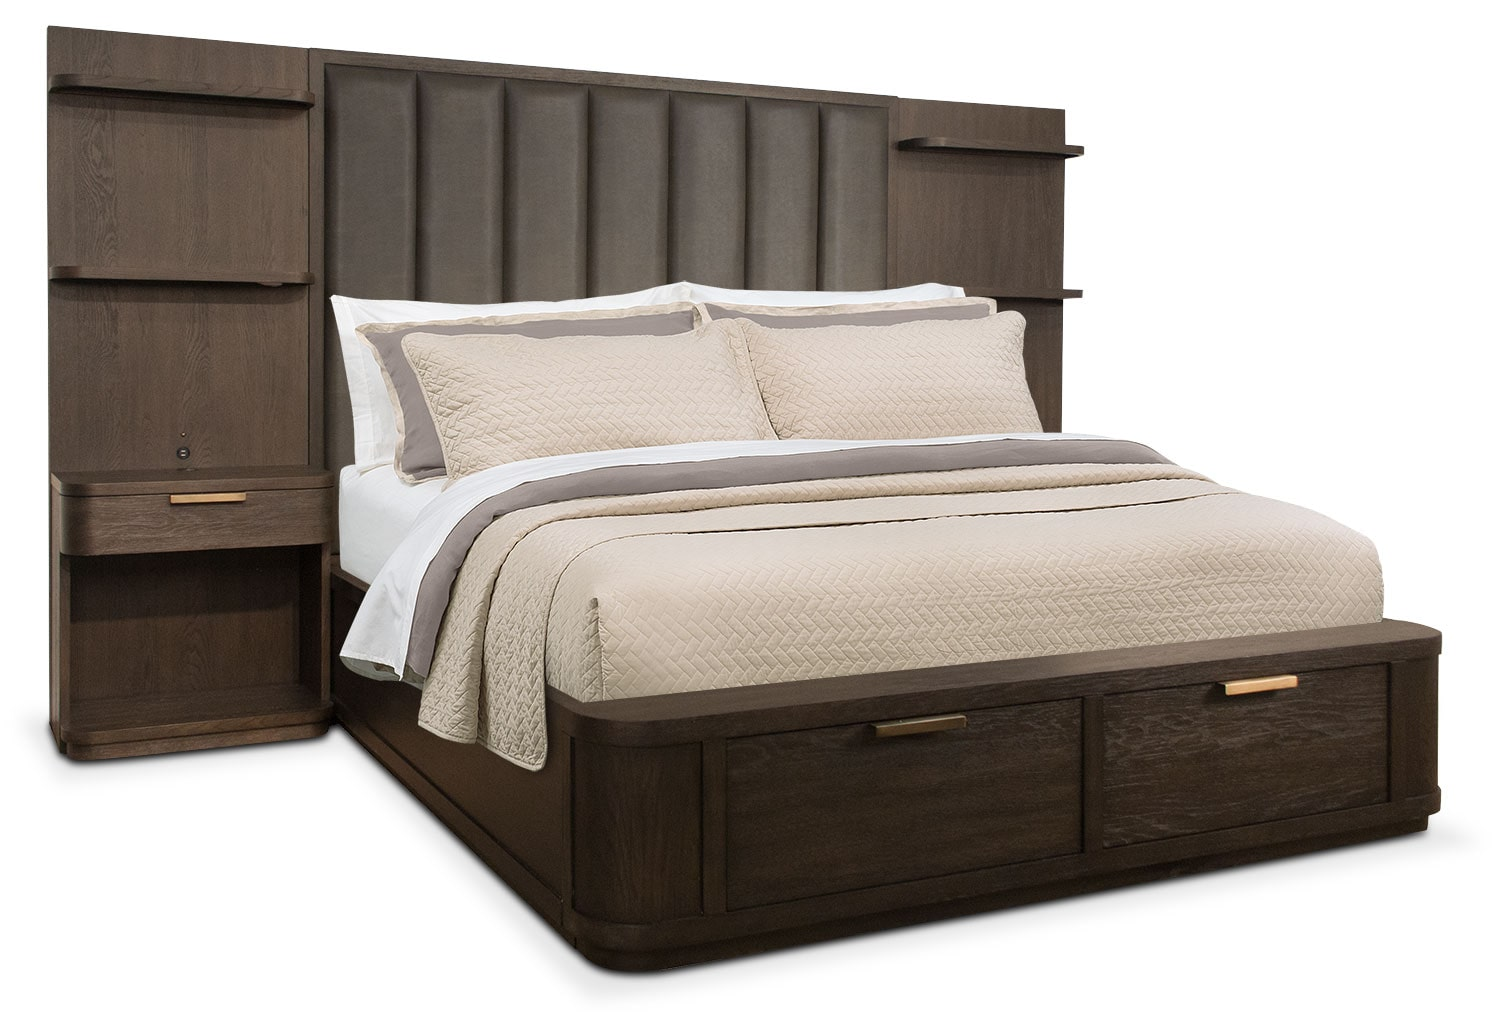 Malibu Queen Tall Upholstered Storage Wall Bed - Umber